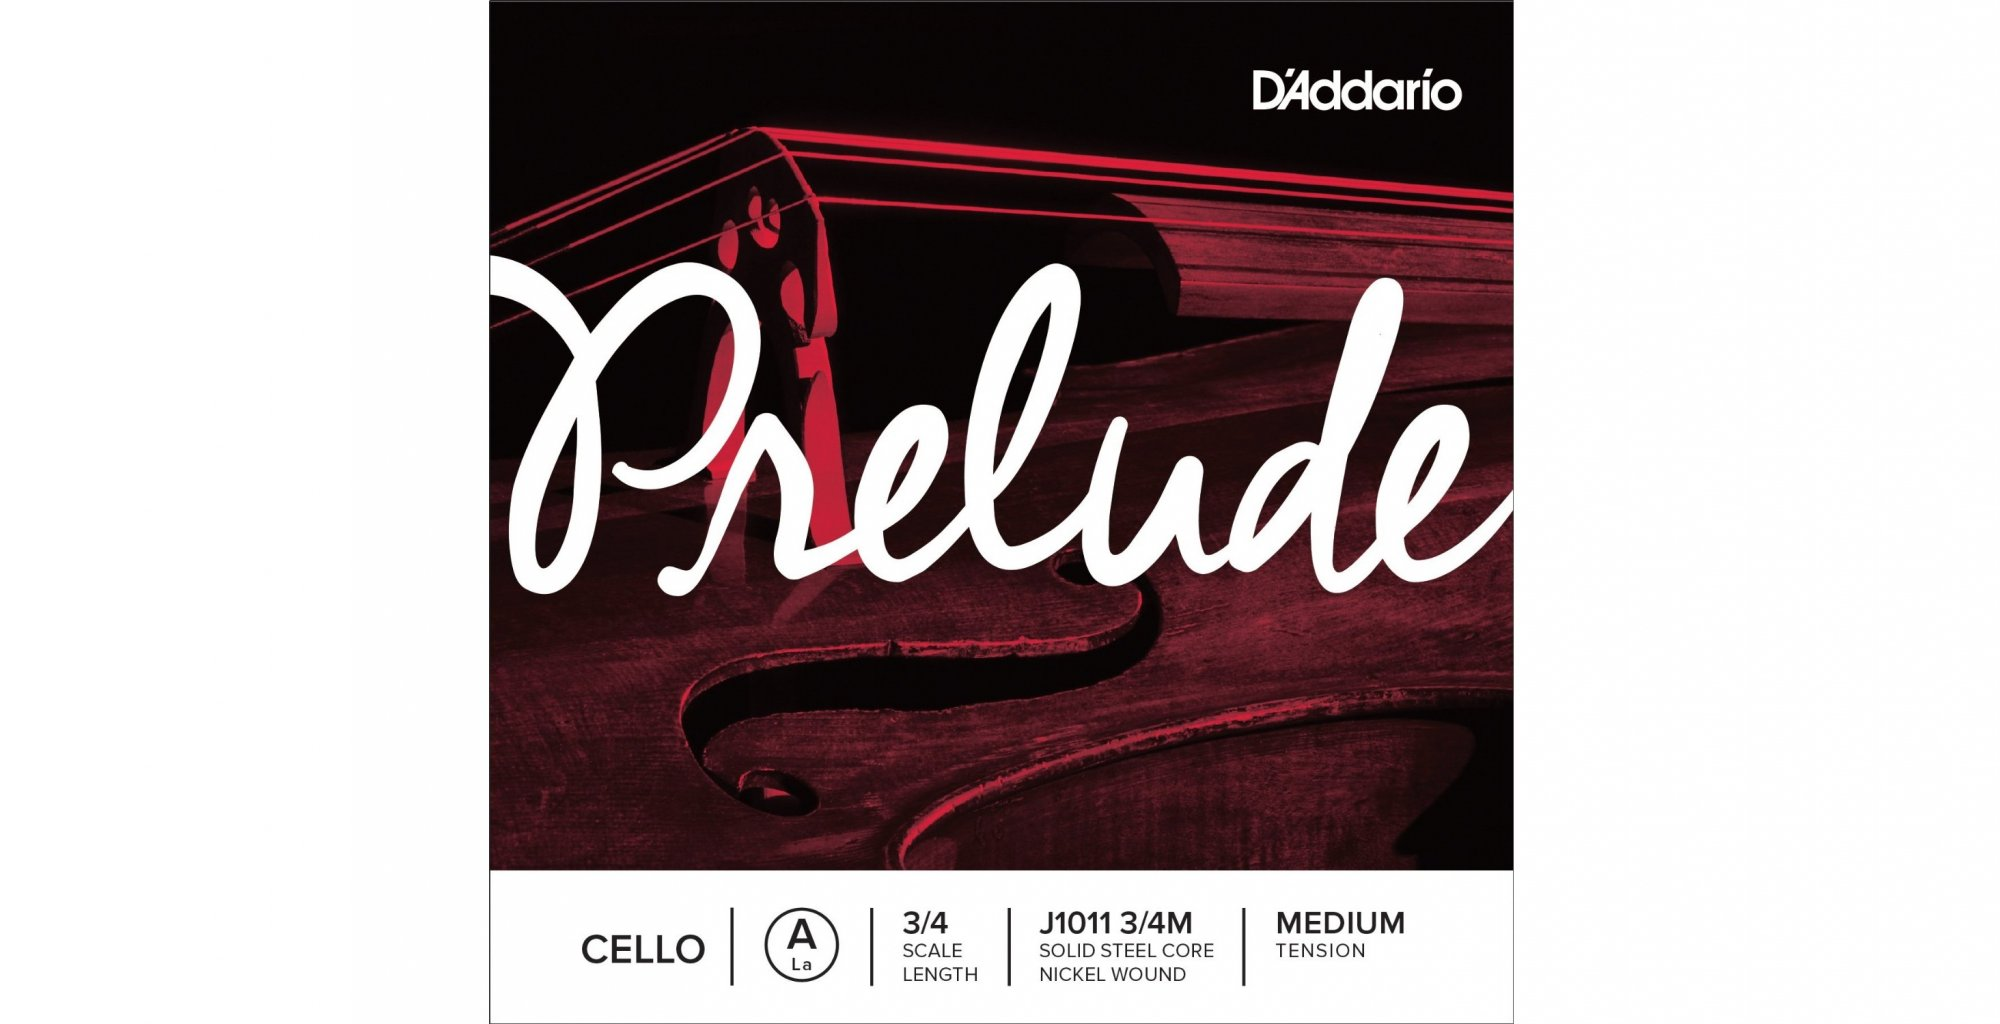 Prelude 3/4 Cello A String